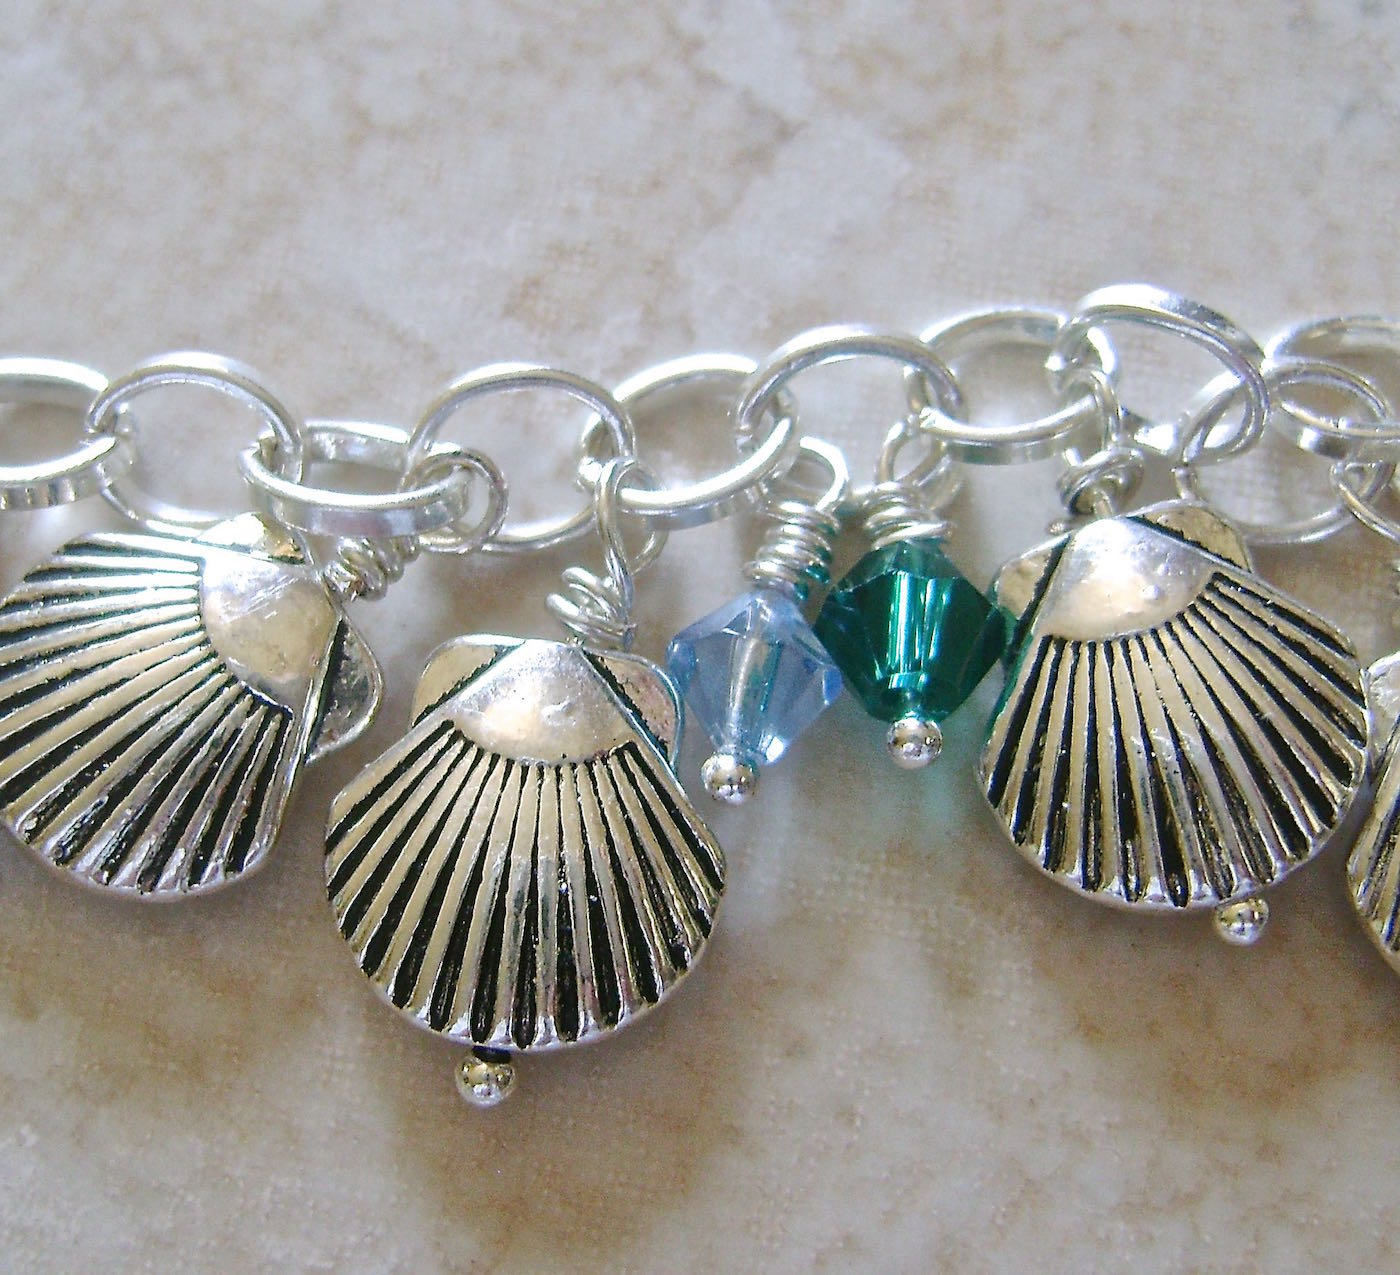 step 8 - Create  wrapped loops  for 13 teal and 13 blue crystals. Open the empty chain link between the shells and attach one of each color crystal.